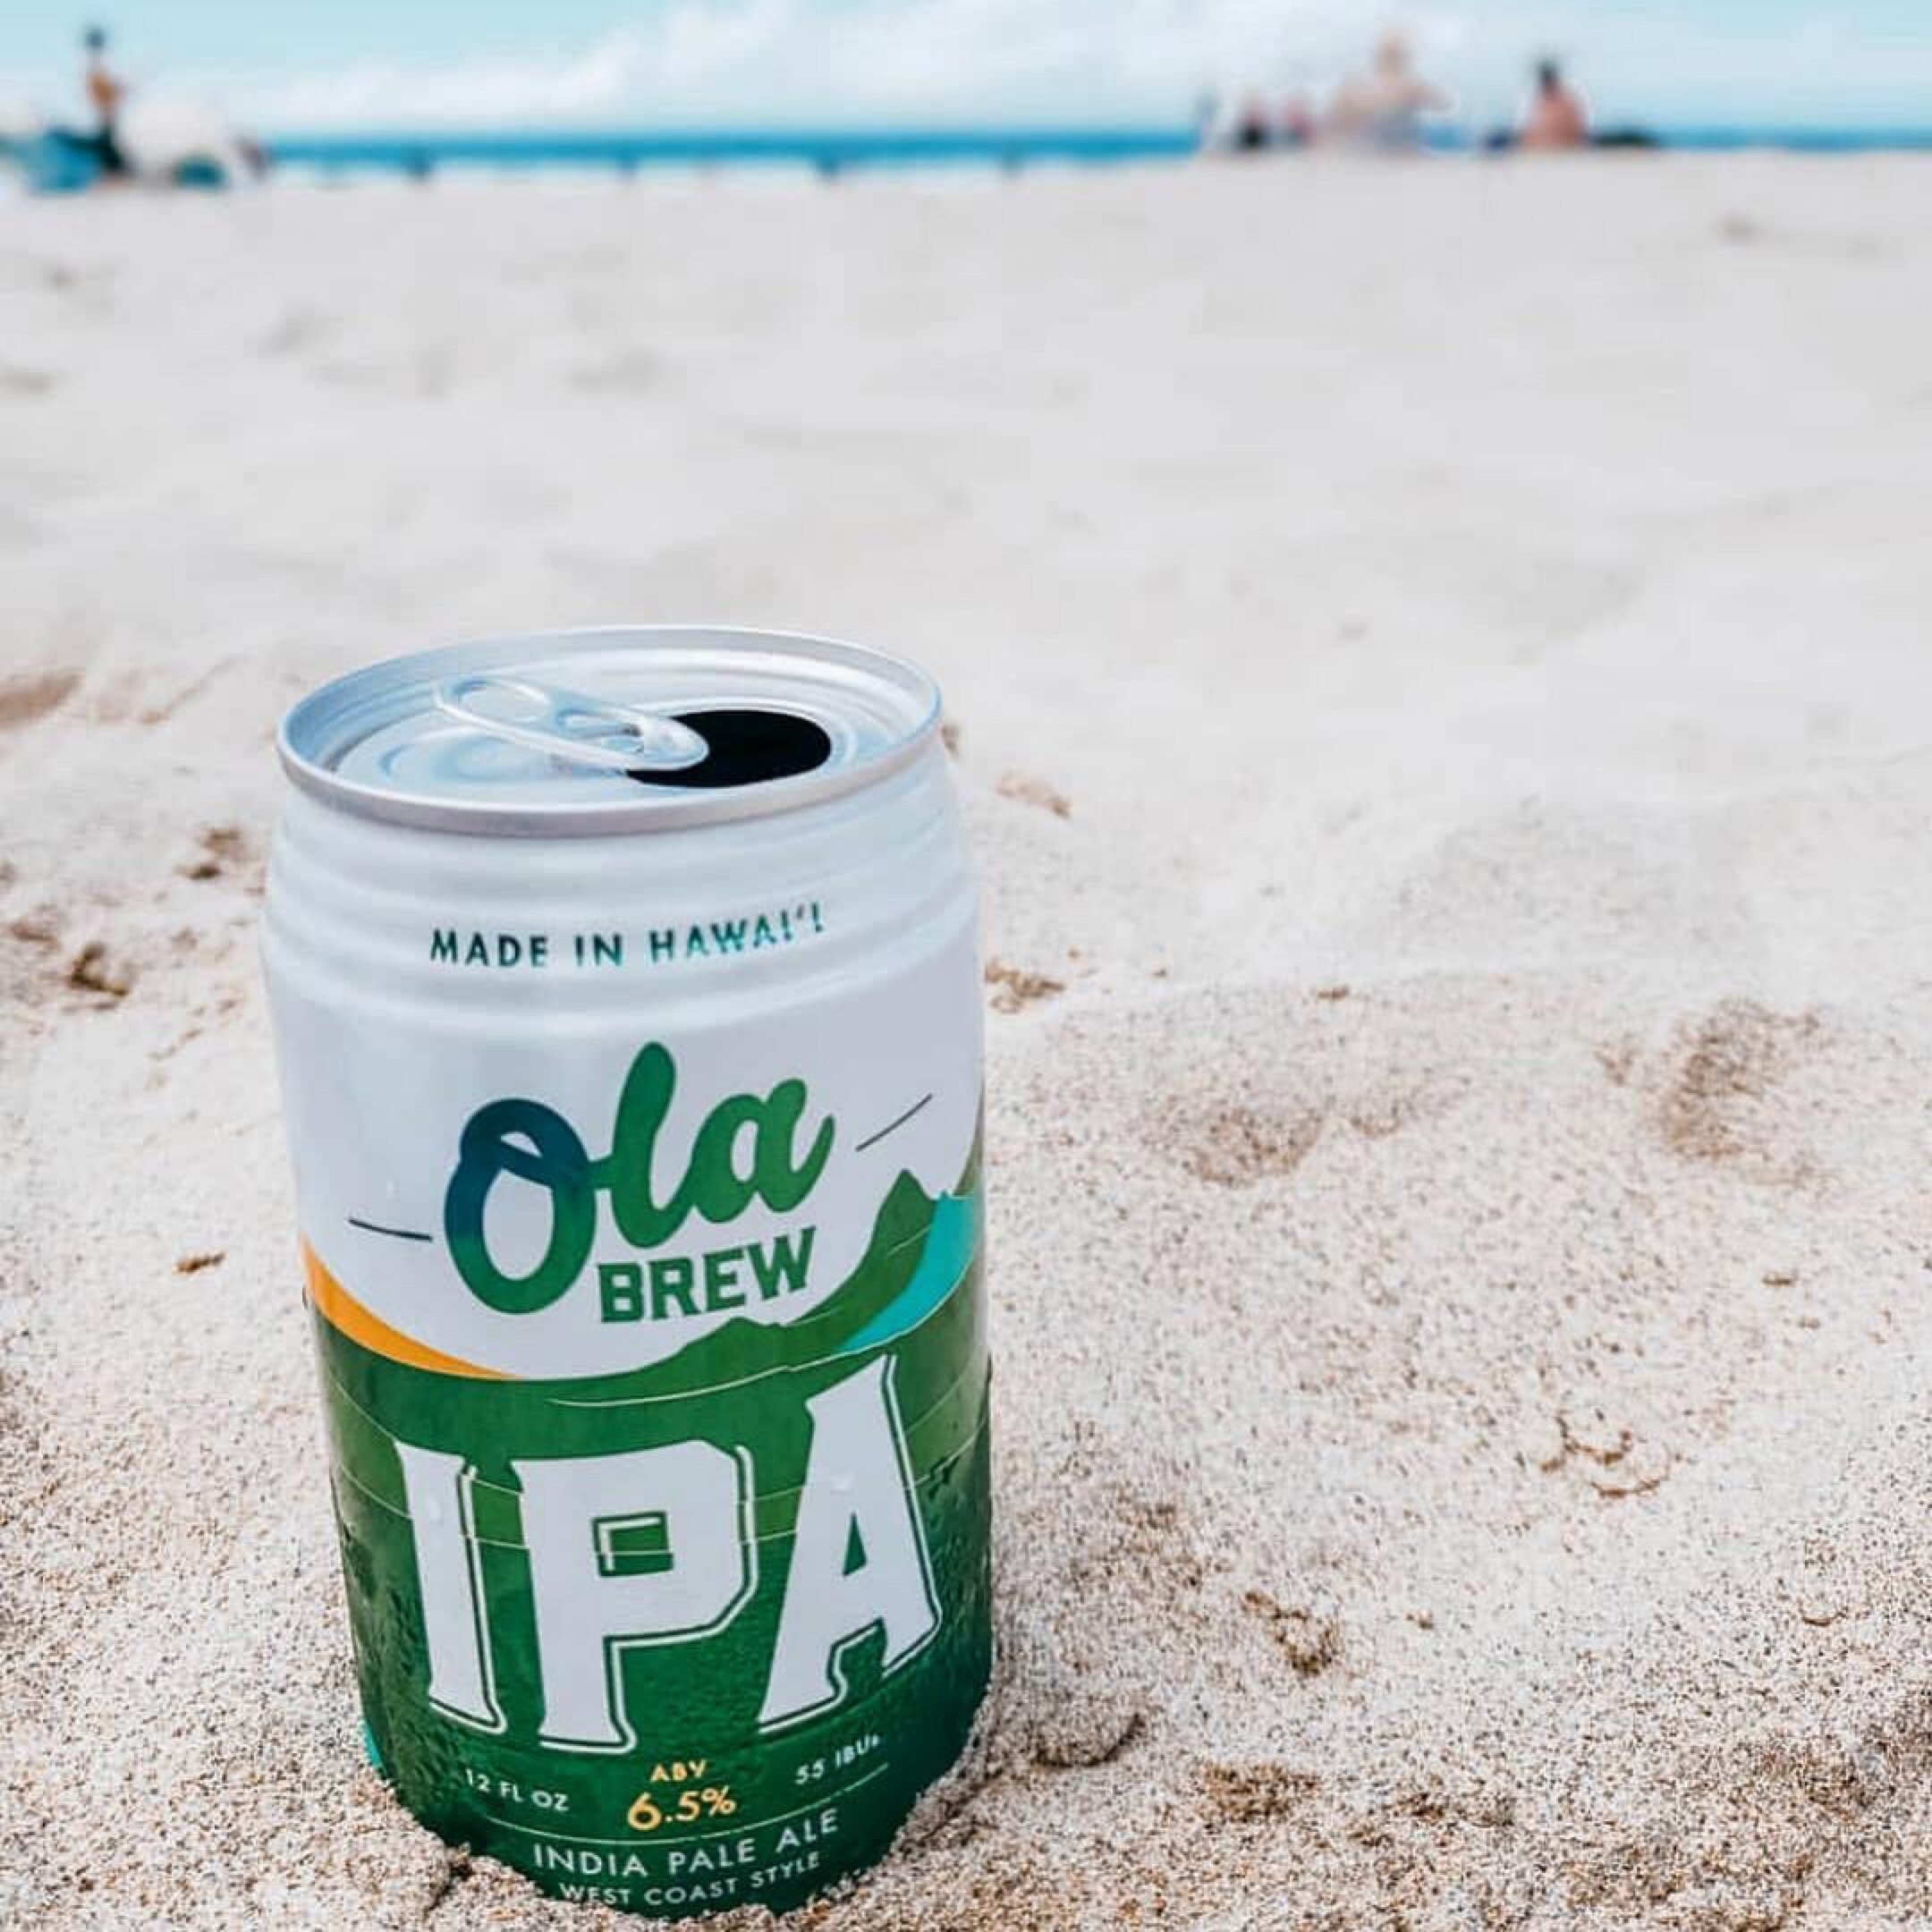 Ola Brew, is the Big Island's newest brewery, located in Kona. Courtesy photo.